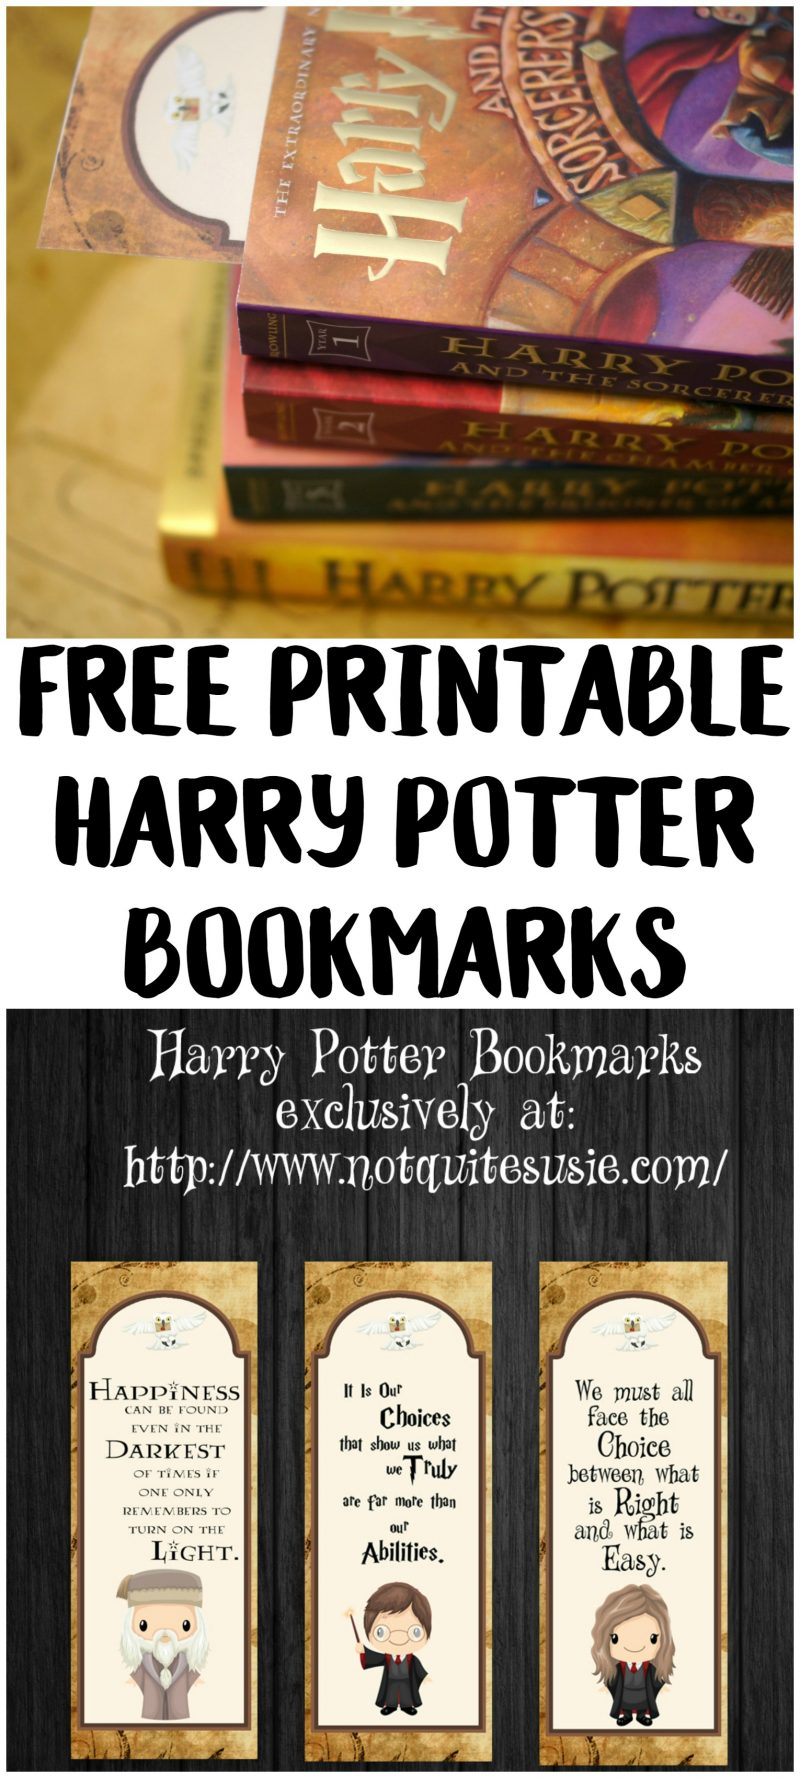 It is a picture of Impeccable Free Printable Harry Potter Bookmarks